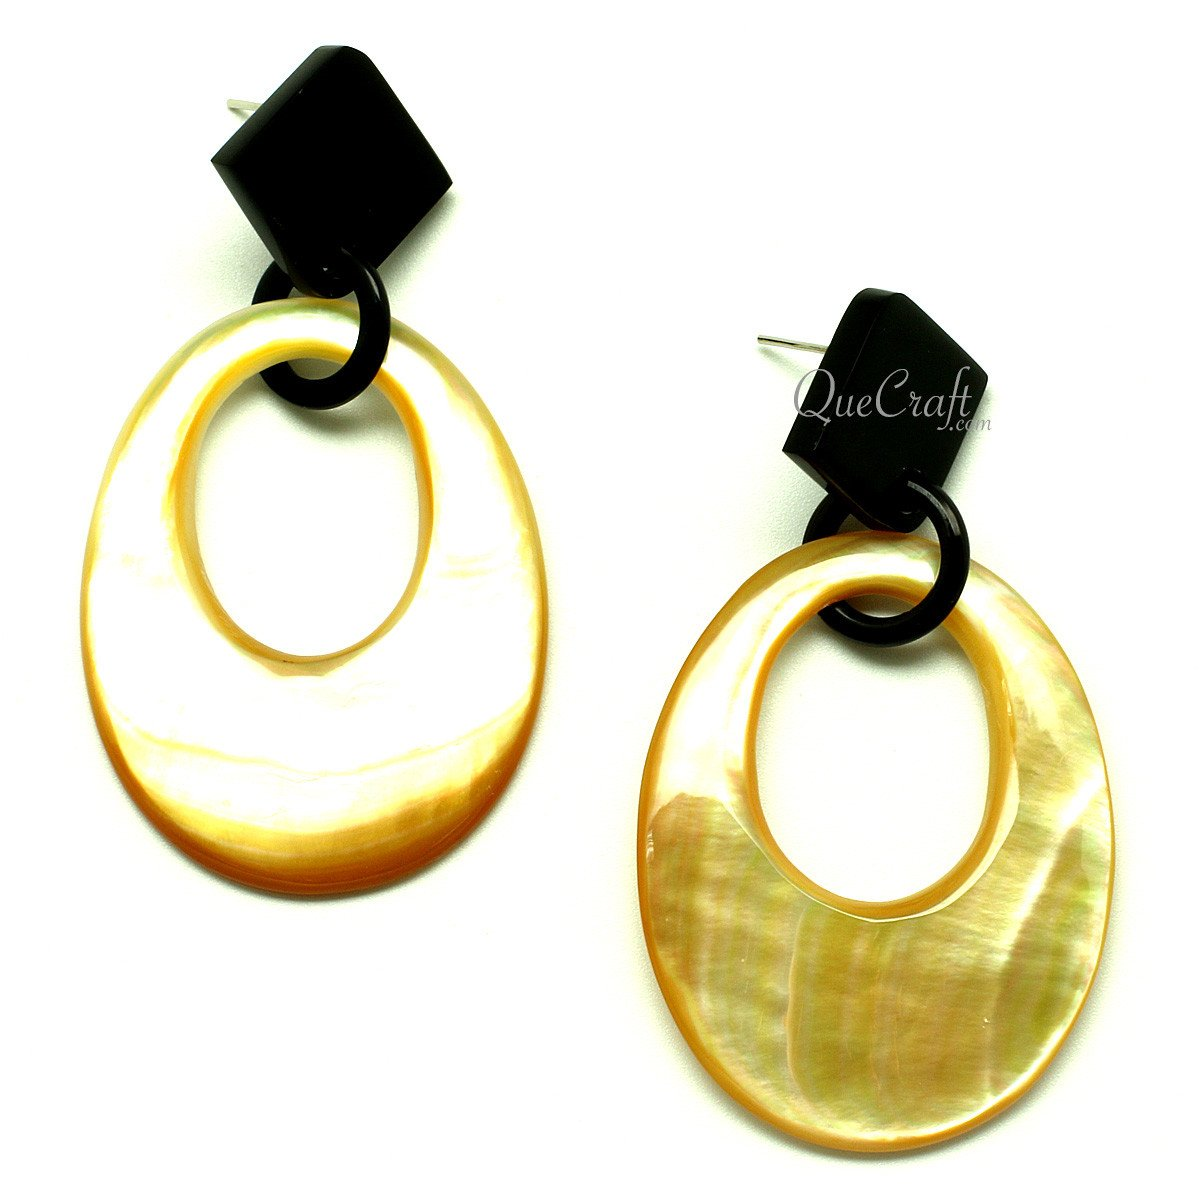 MOP & Horn Earrings #12913 - HORN.JEWELRY by QueCraft